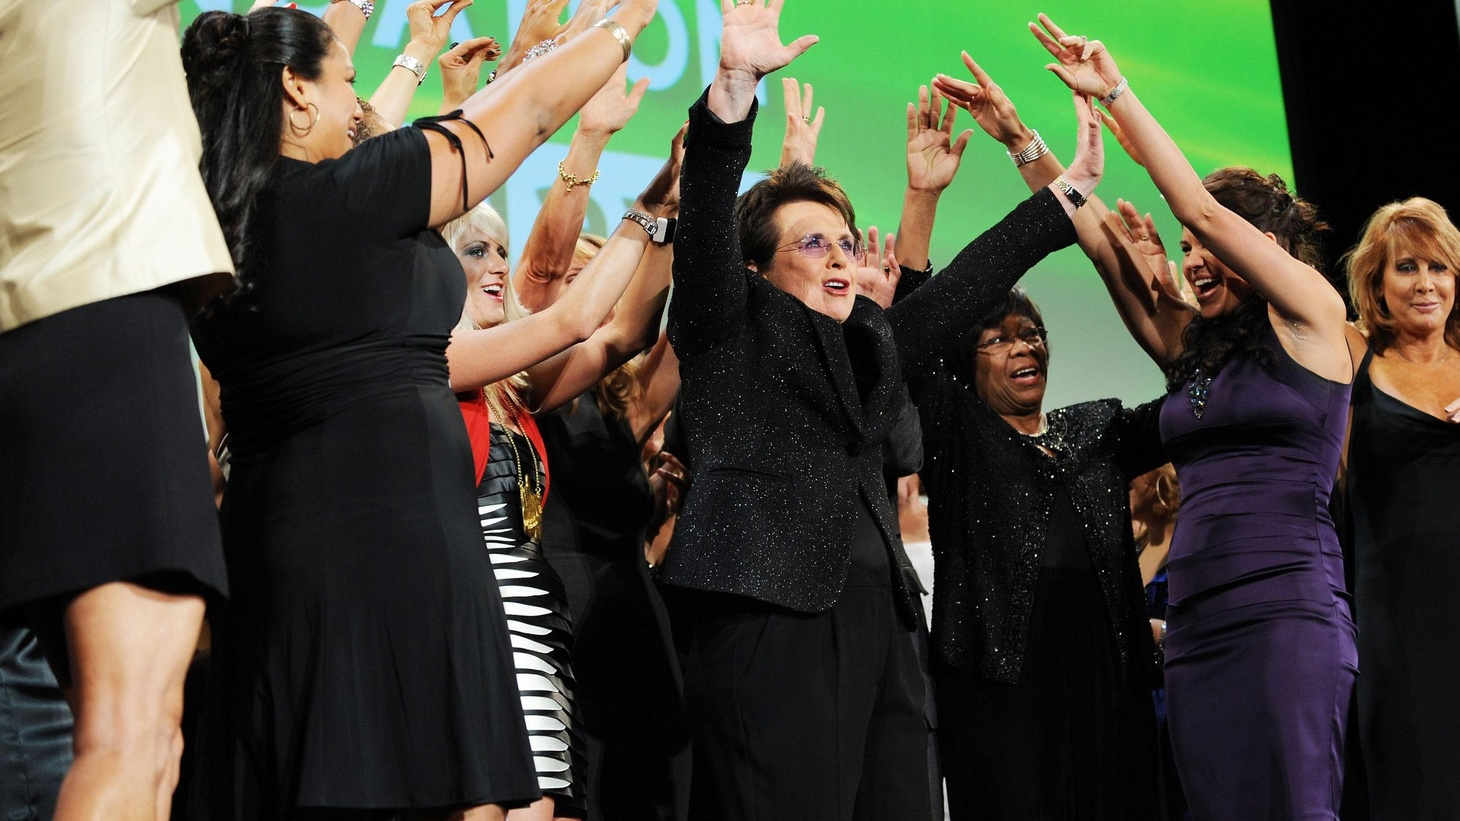 There are dozens upon dozens of black-tie fundraiser dinners throughout each year, usually backing worthwhile causes while offering special guests and entertainment. Tuesday night was the annual night for Billie Jean King's Women's Sports Foundation and it has been reported consistently throughout the 30 years of this dinner that it is the lively night that stands out among all the others. Veteran newswoman Cokie Roberts began her remarks on Tuesday by recounting just how many dreadfully dreary political evenings she had suffered through in that very Waldorf Astoria Ballroom...